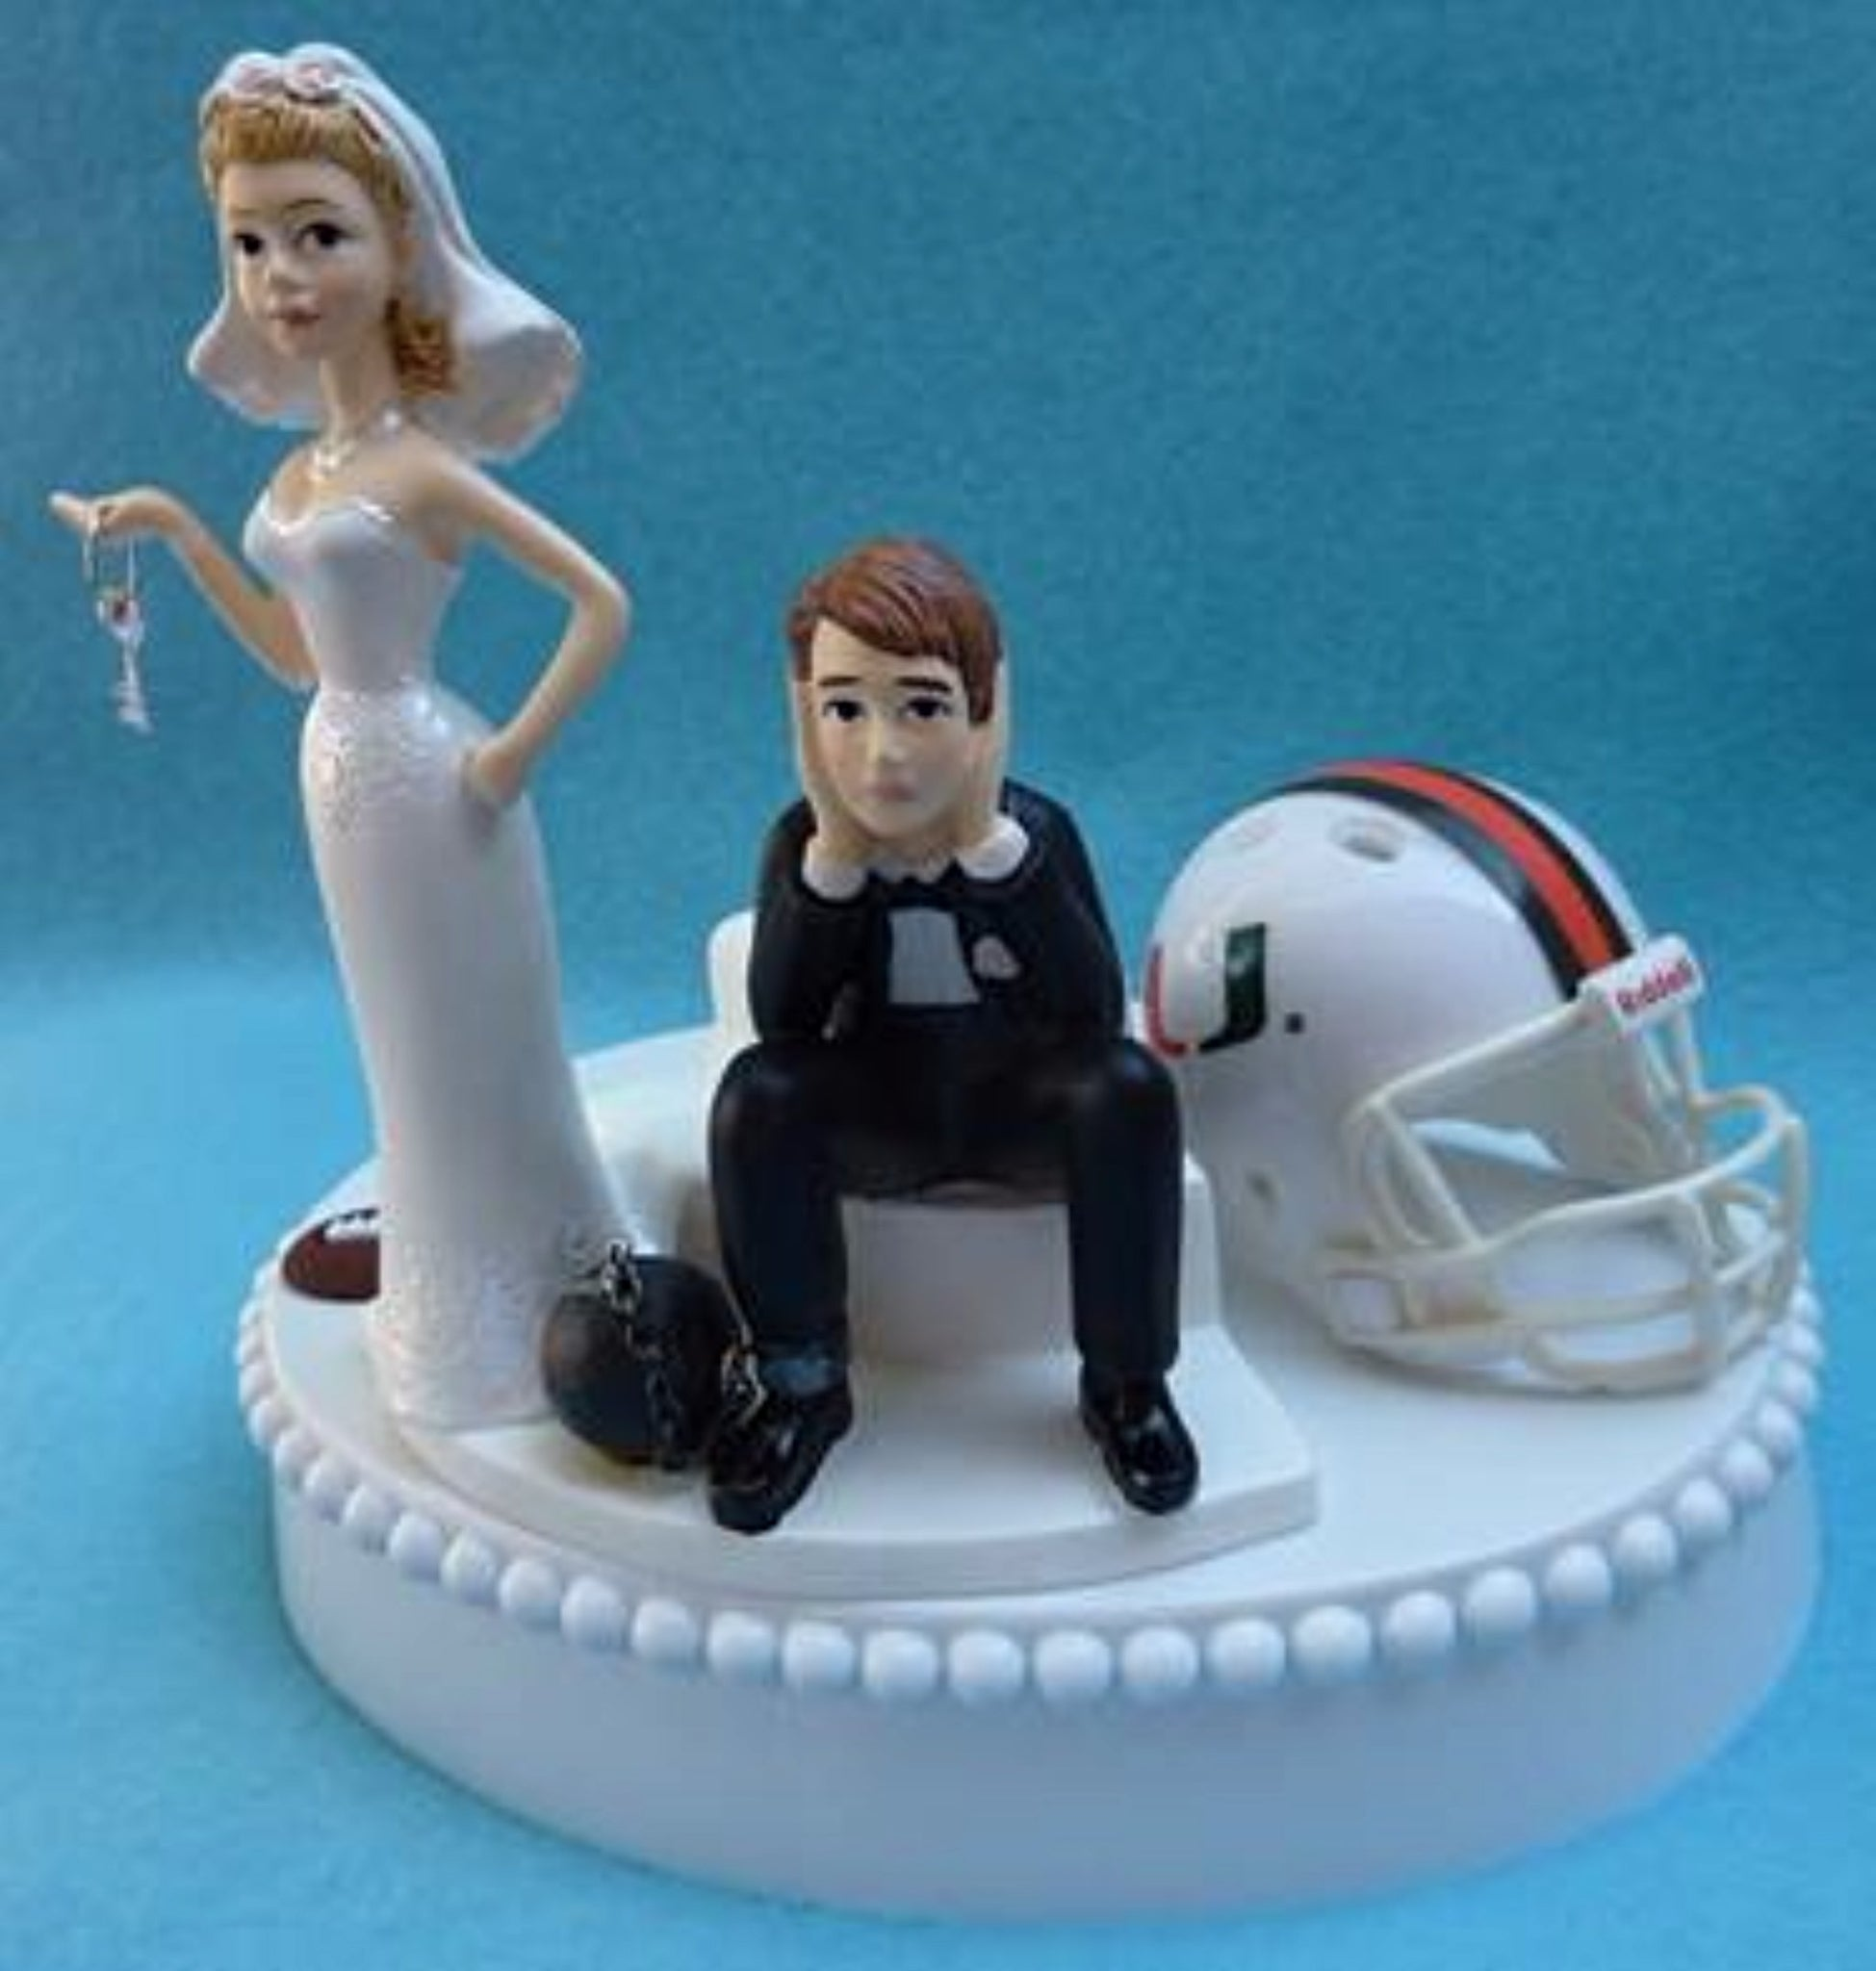 University of Miami wedding cake topper Hurricanes Canes UM funny bride sad groom humorous Fun Wedding Things